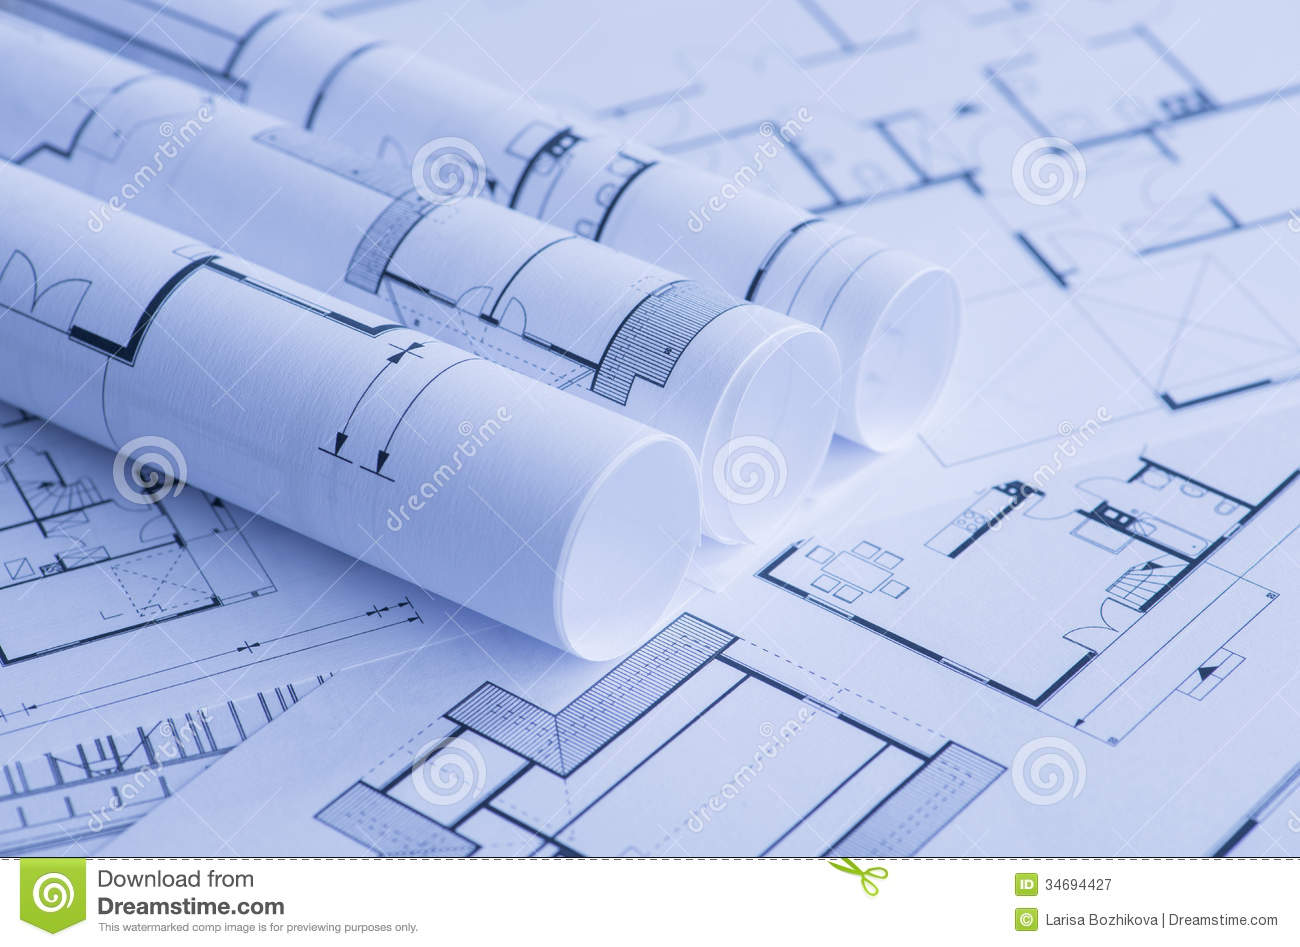 Rolls of blueprints stock image image of place focus 34694427 rolls of blueprints malvernweather Gallery